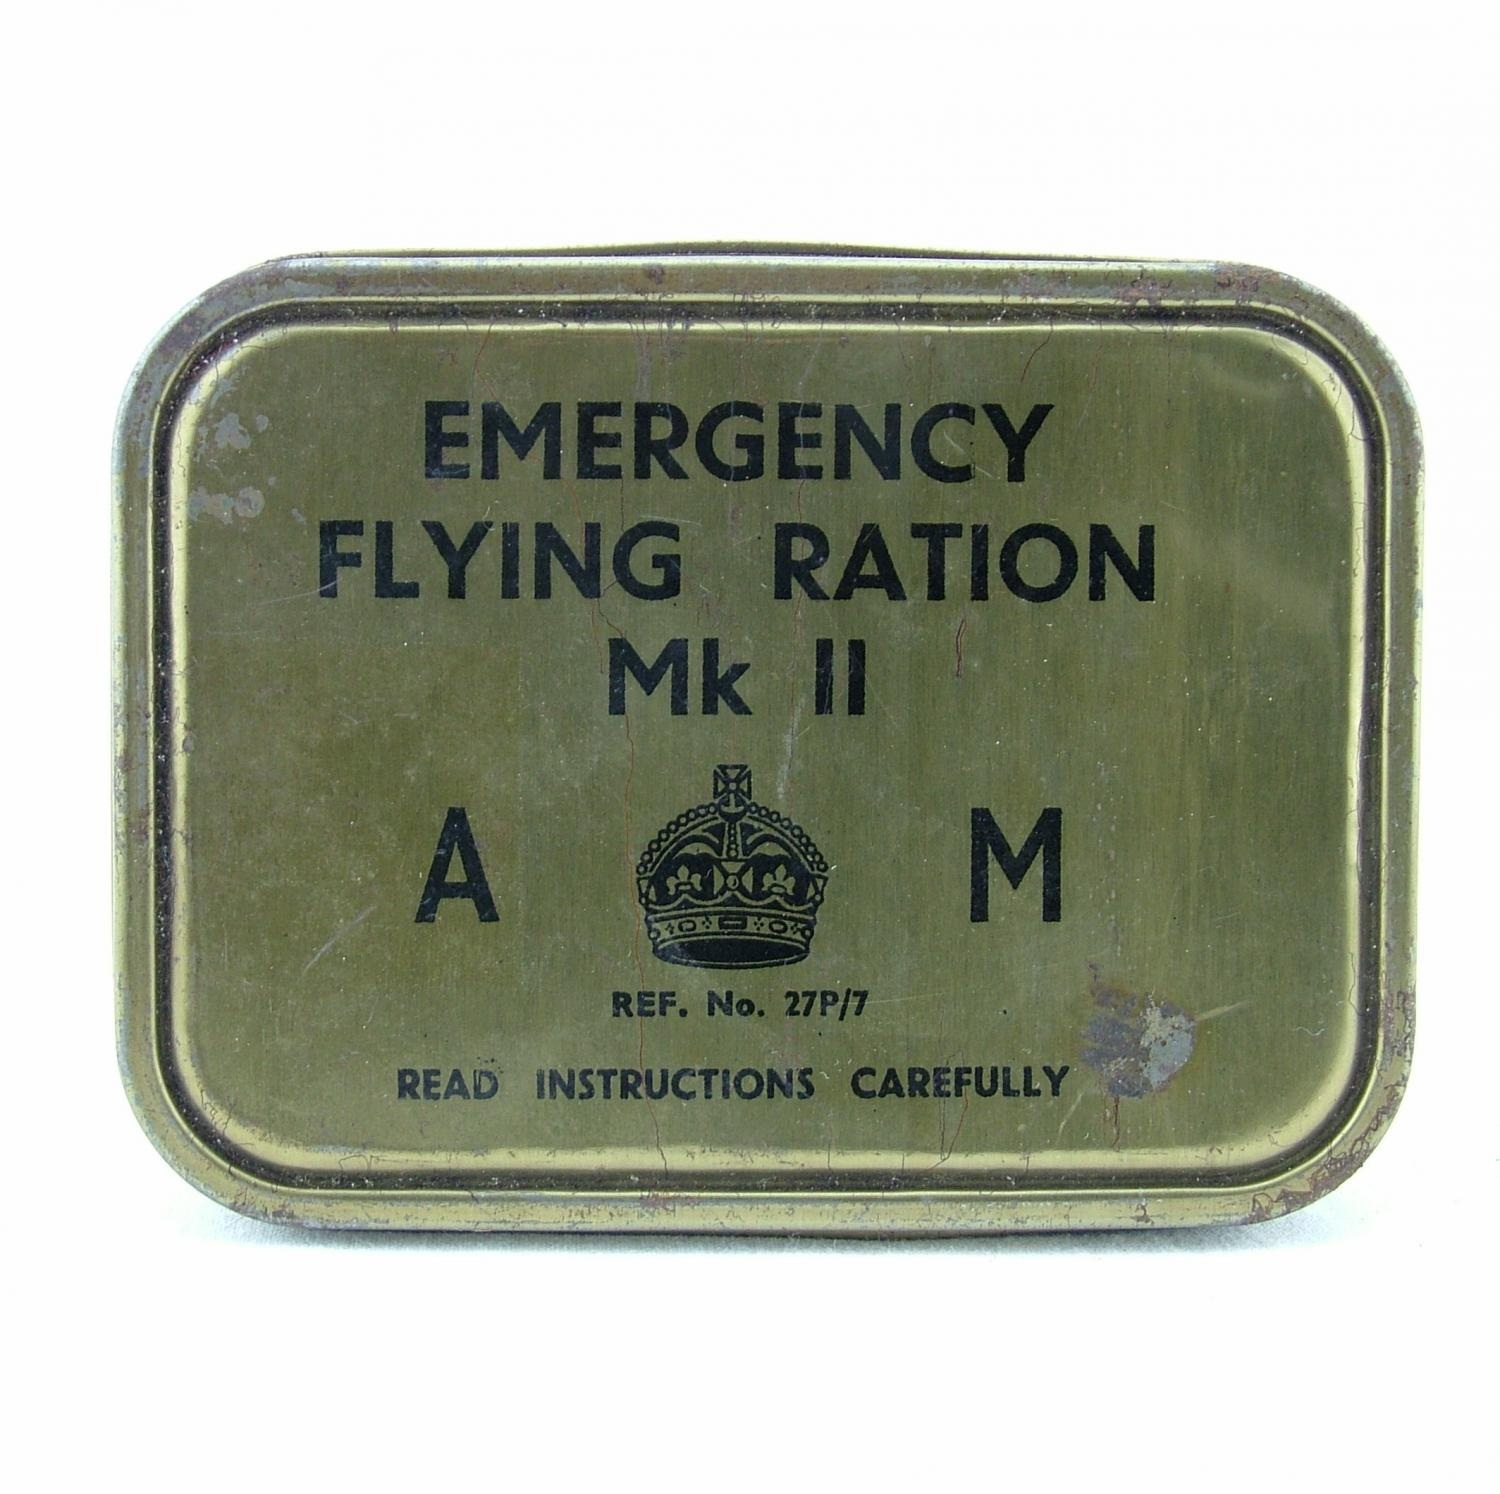 Air Ministry emergency flying ration